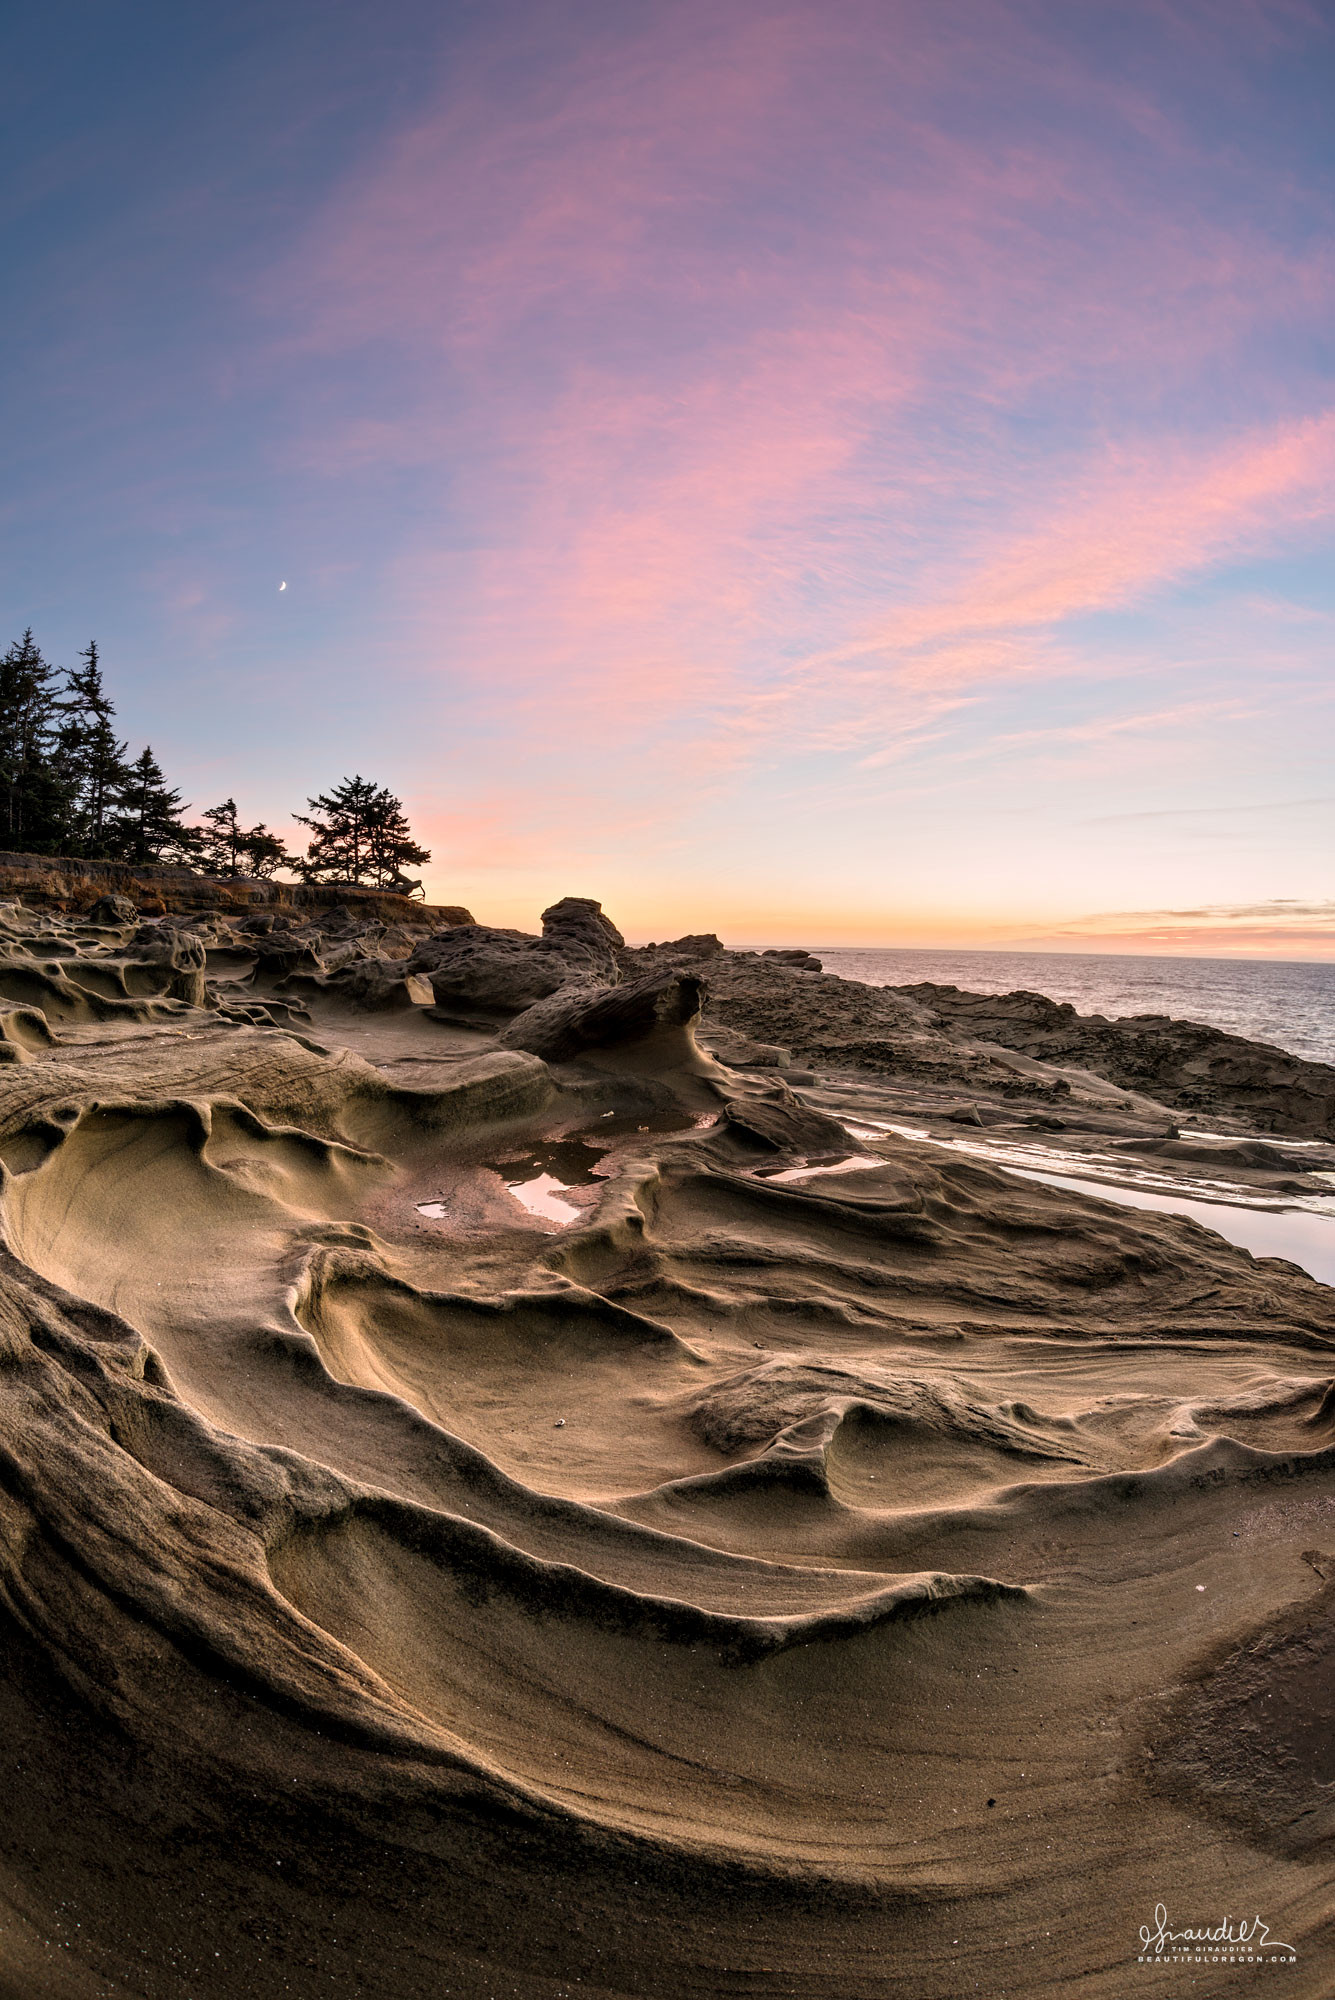 Fantastic folds of weathered sandstone at Shore Acres State Park. Cape Arago, Coos County, Oregon south coast landscape photography.